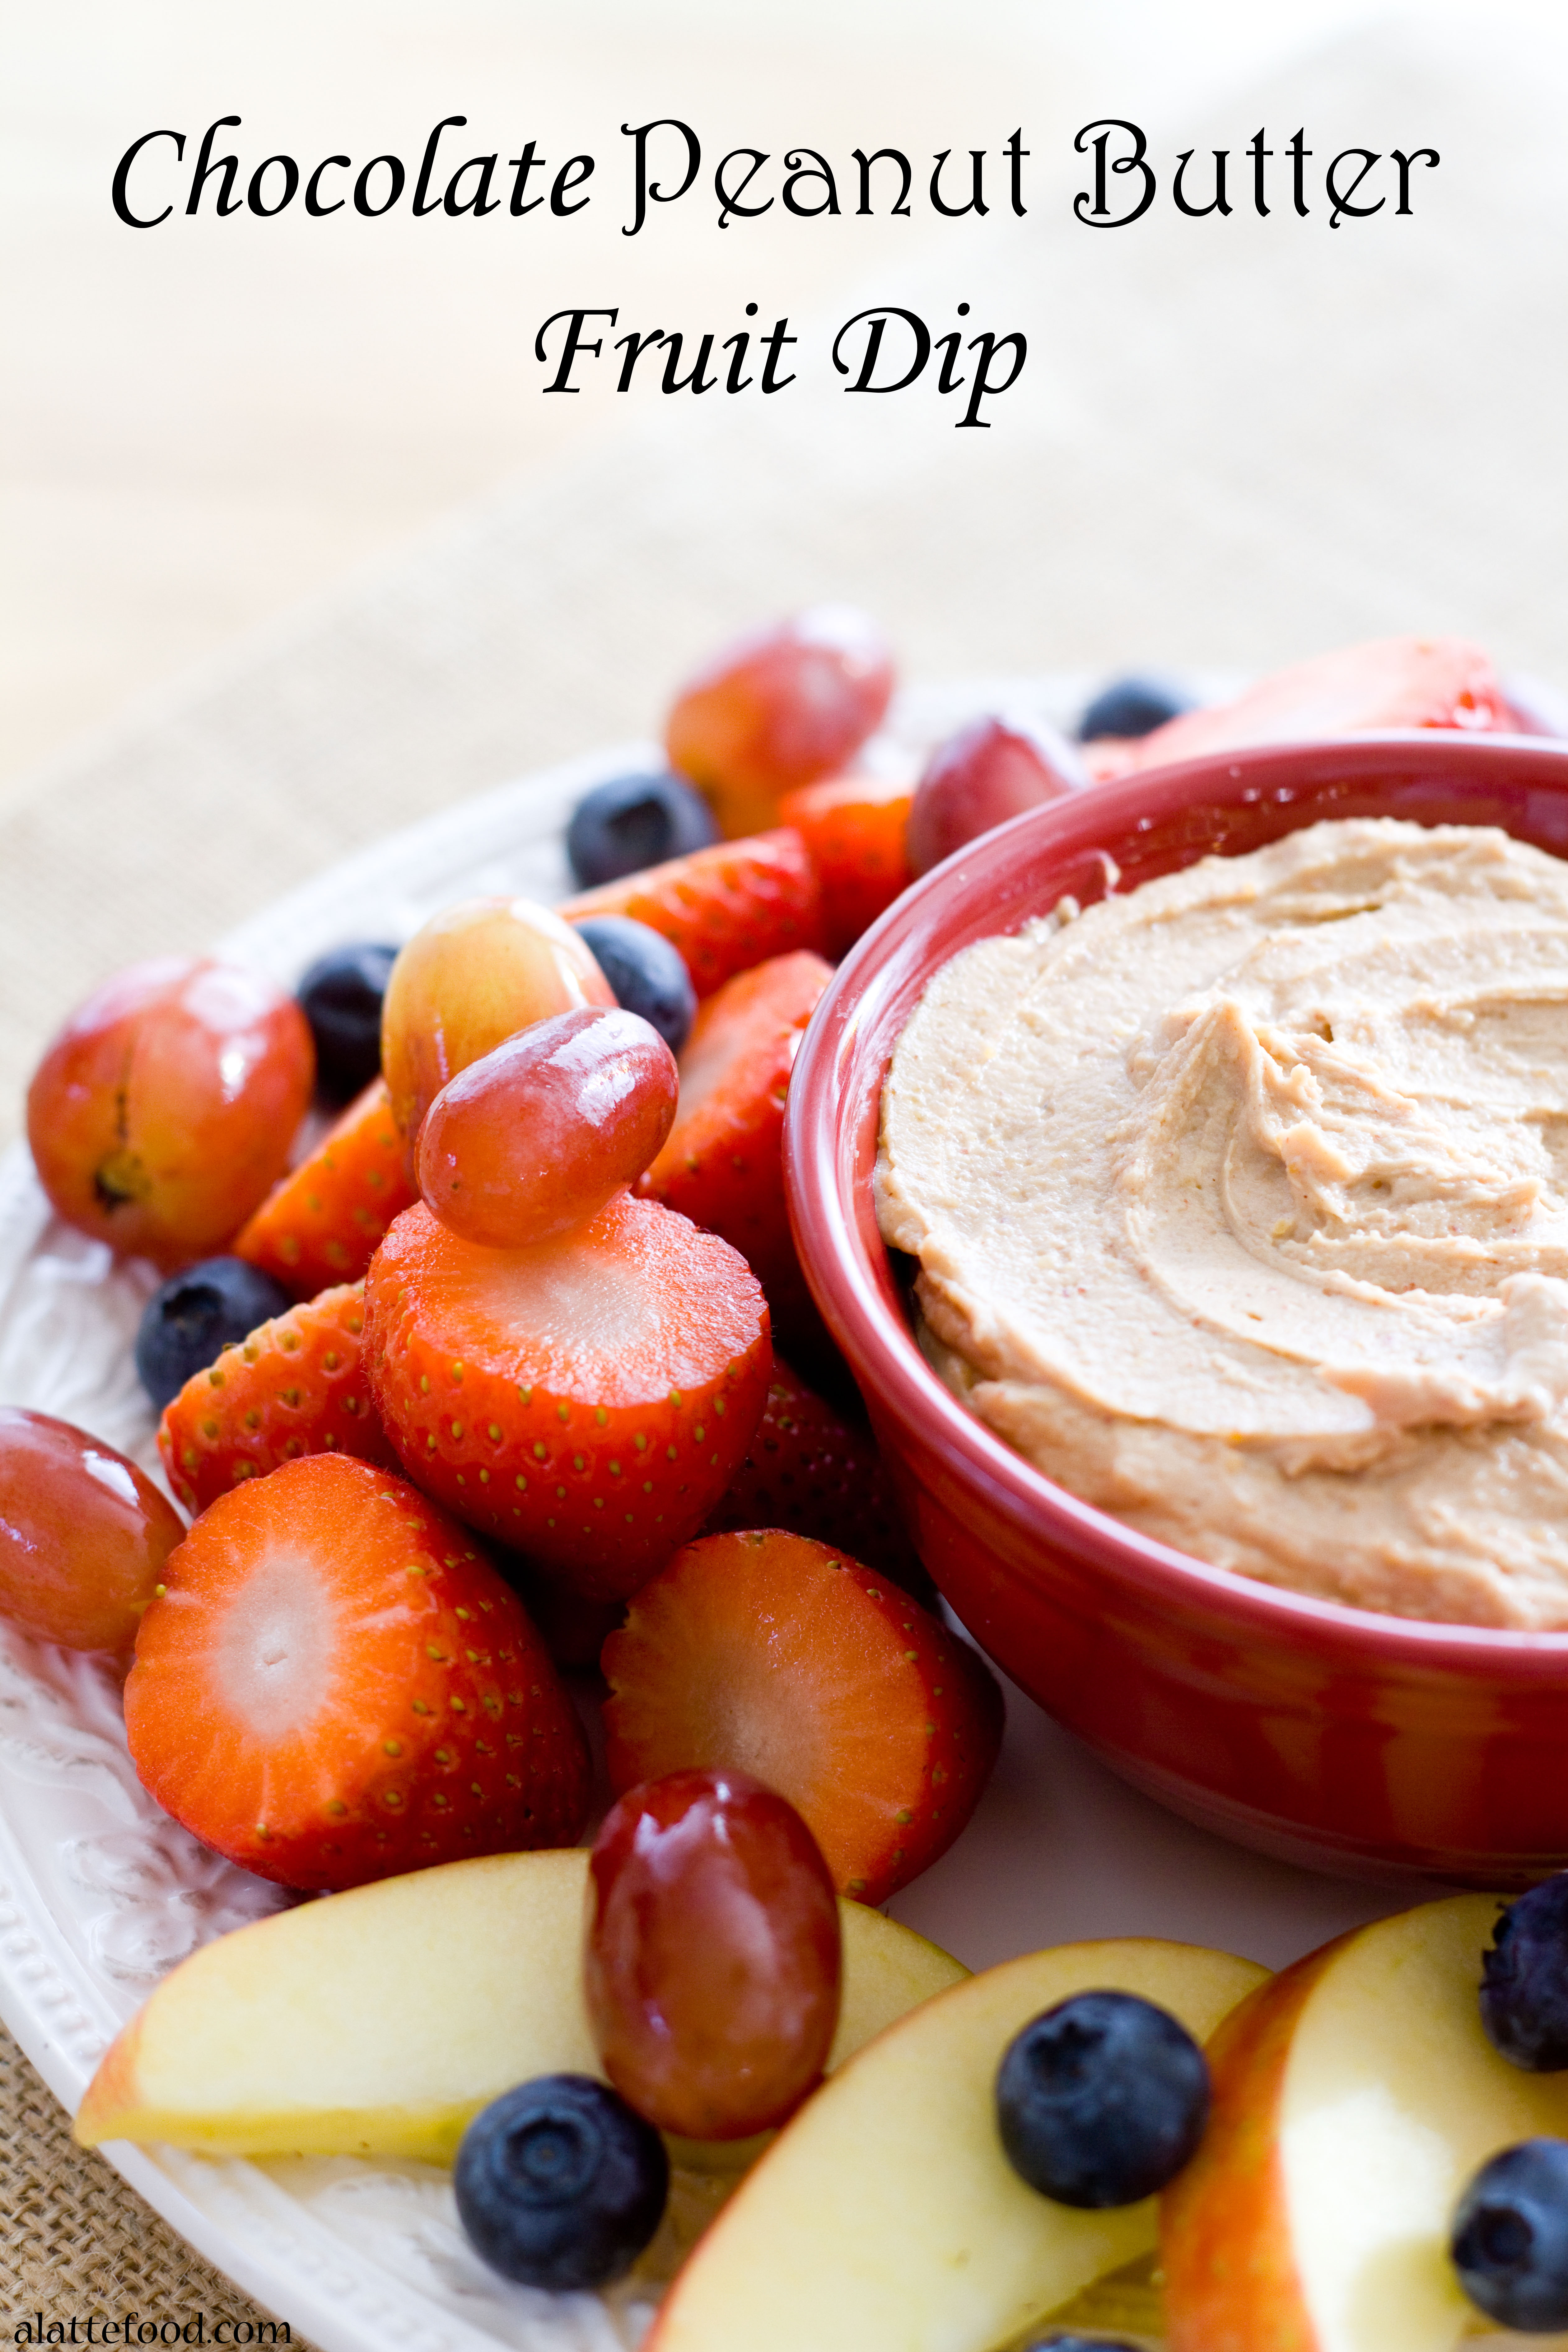 Healthy and Gluten-Free} Chocolate Peanut Butter Fruit Dip